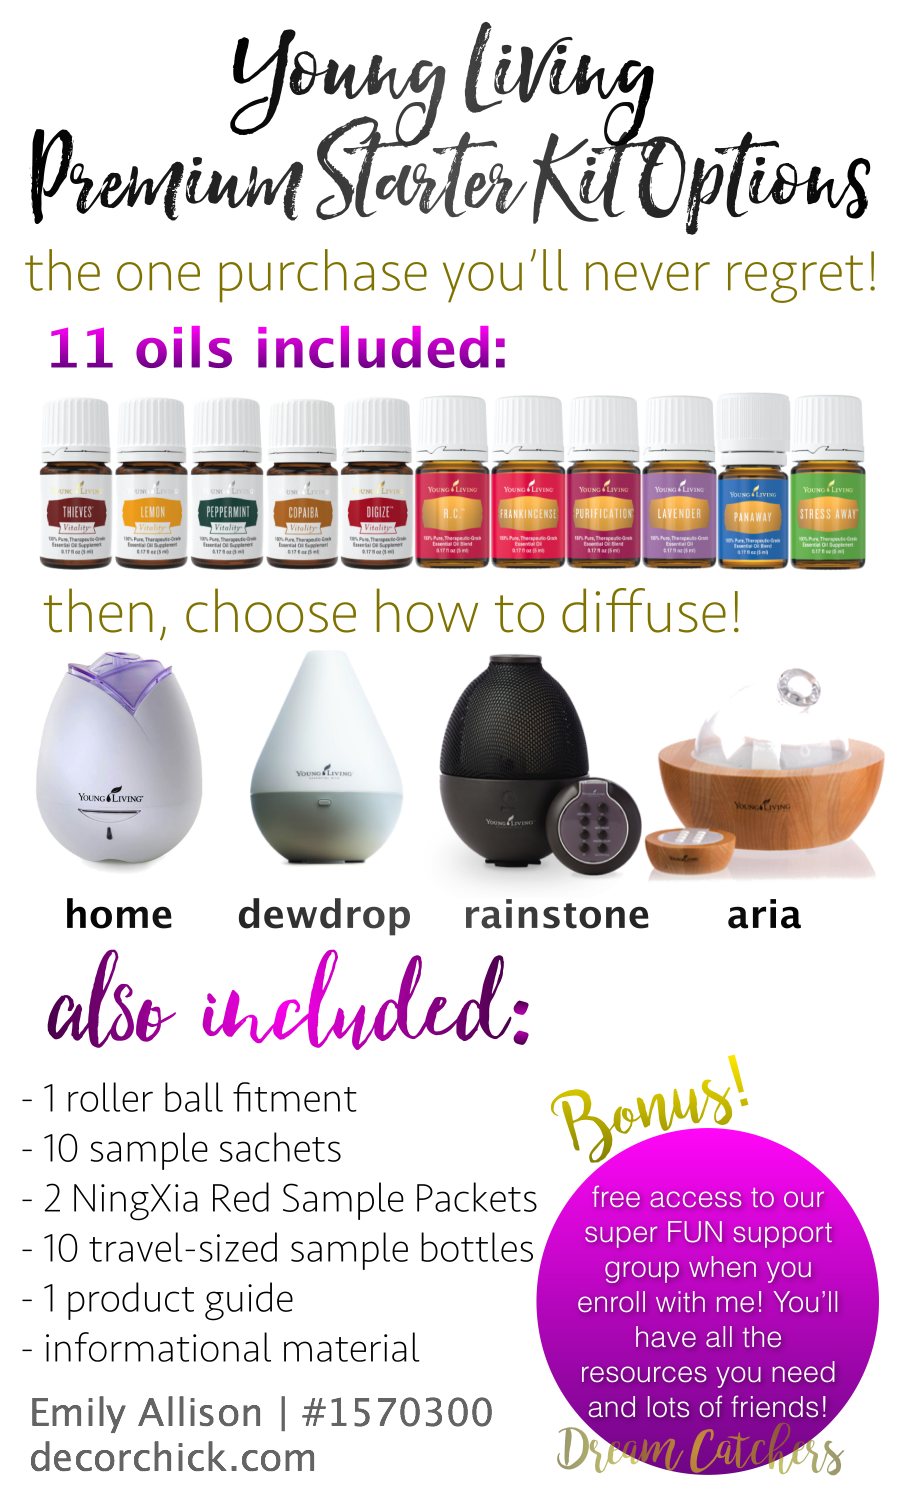 Young Living Premium Starter Kit Options! | Decorchick!®